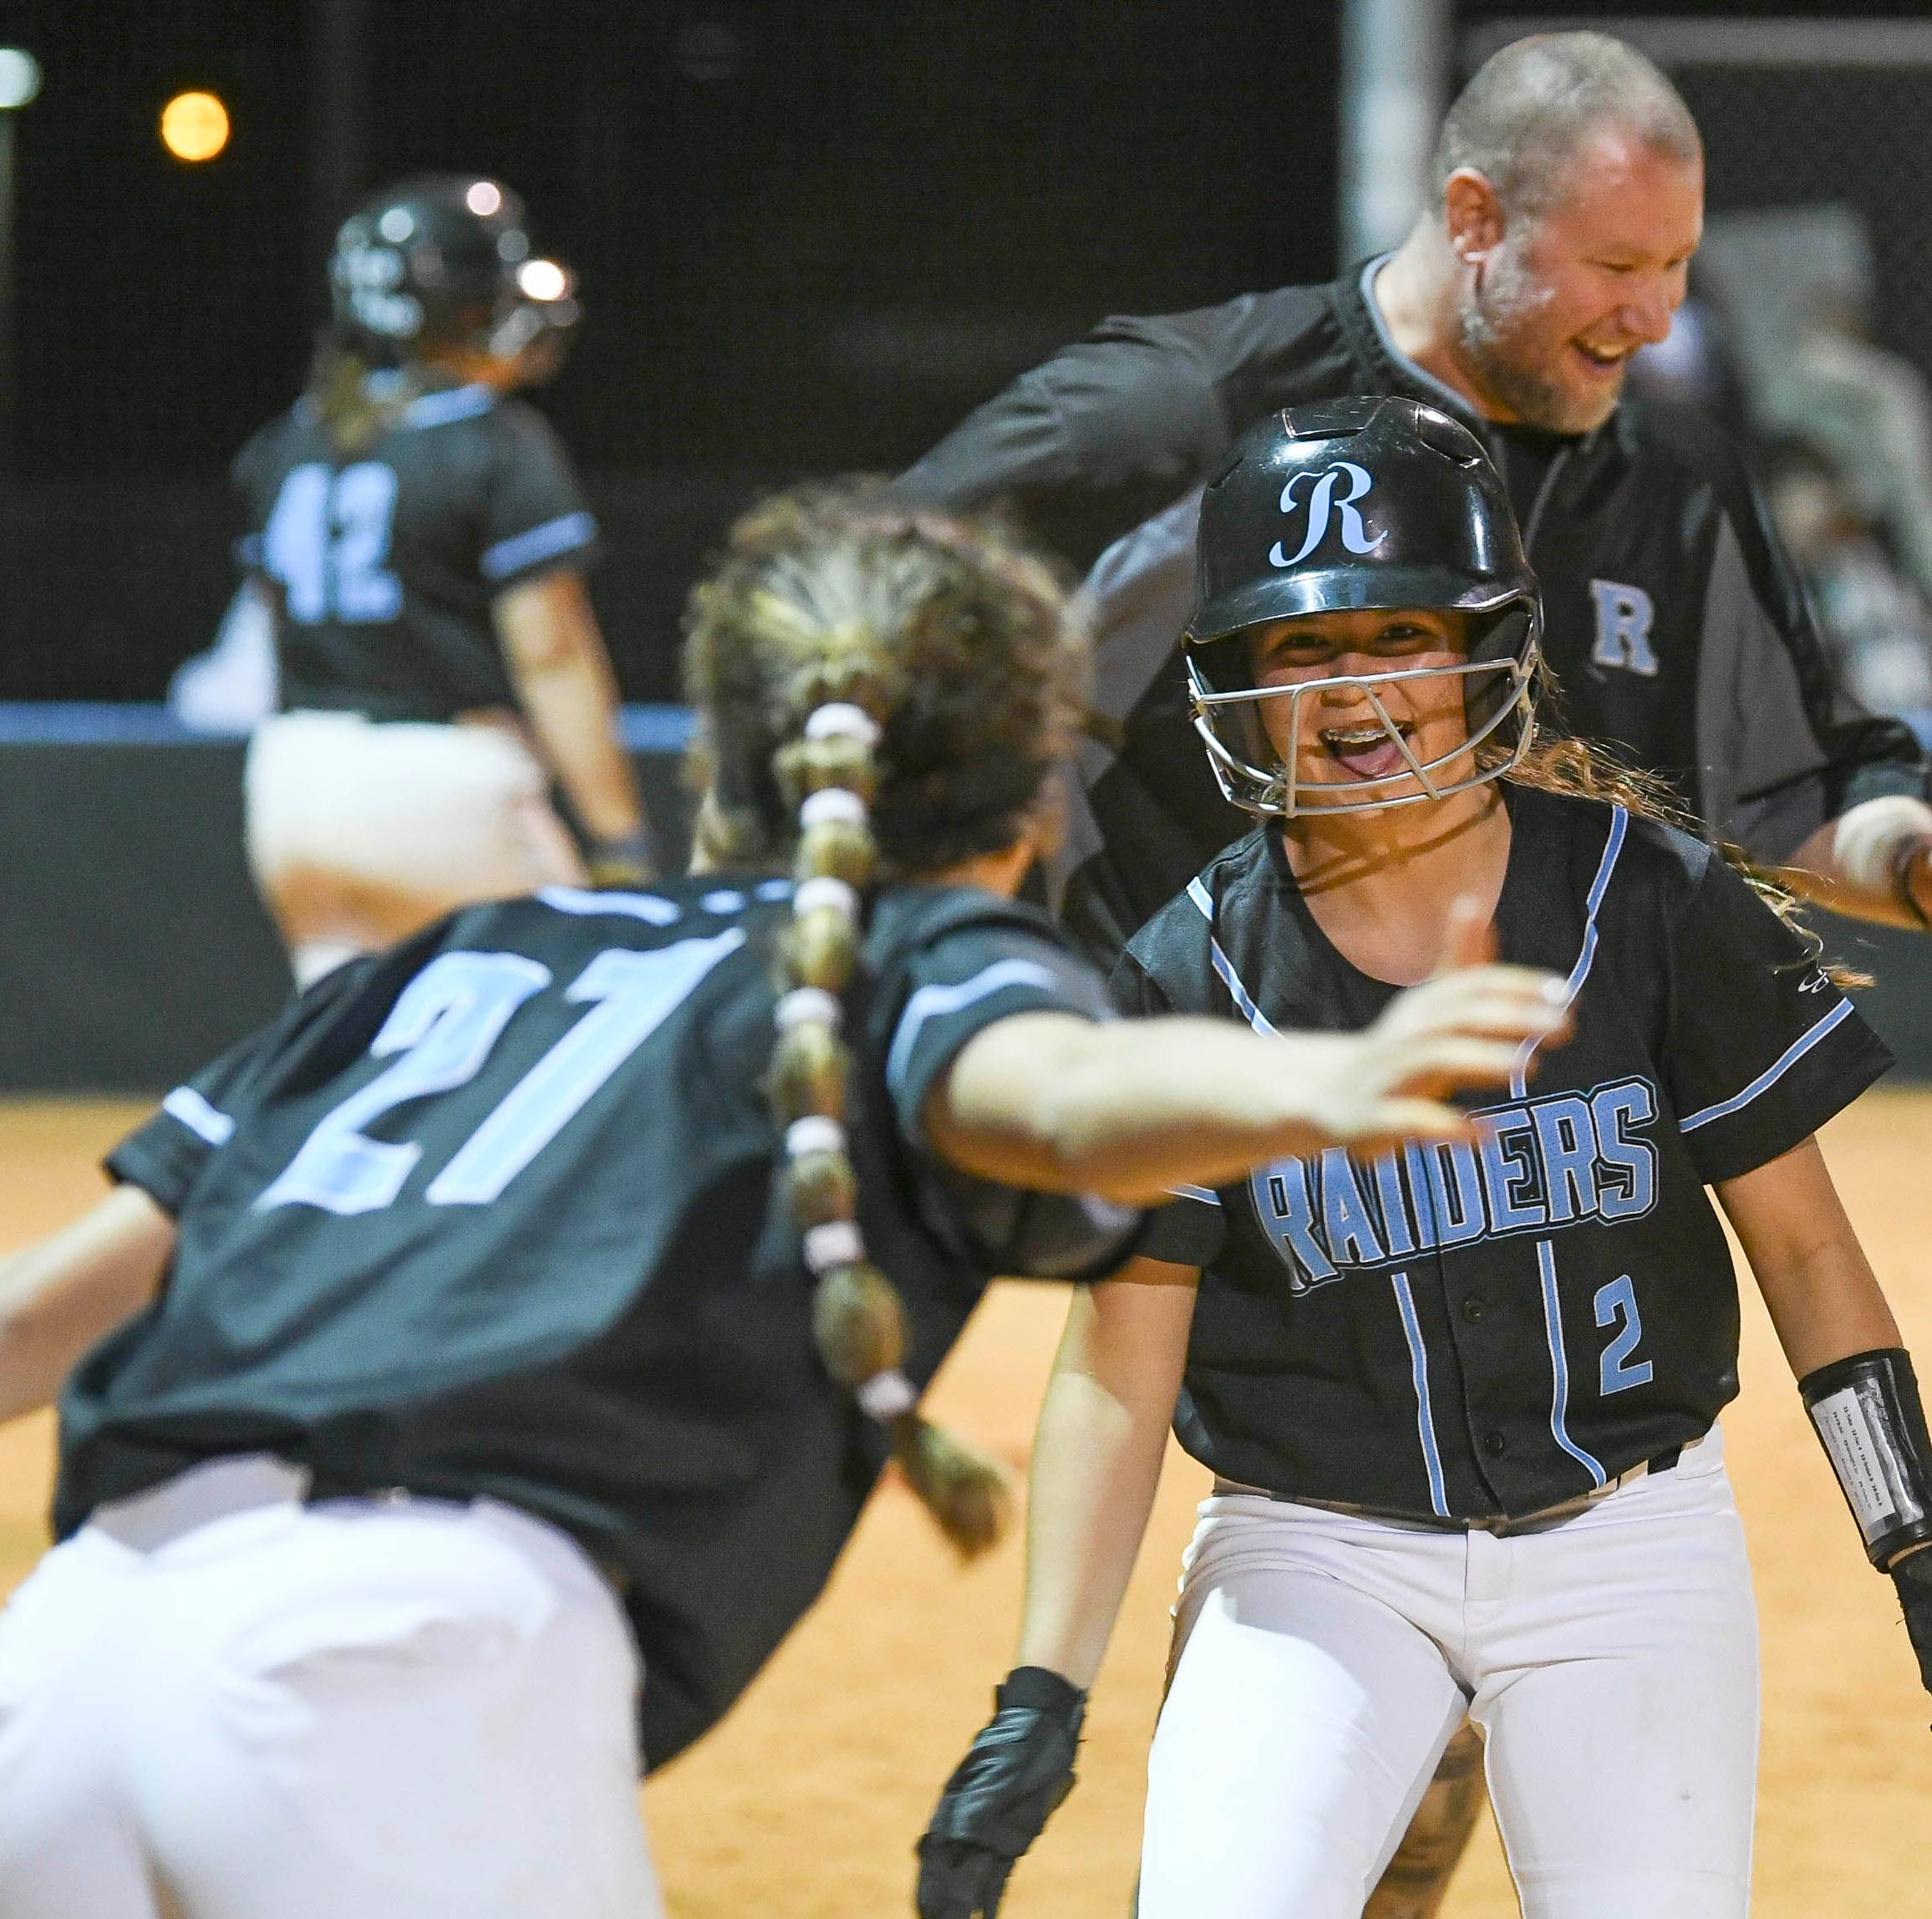 Regional softball, baseball continue tonight